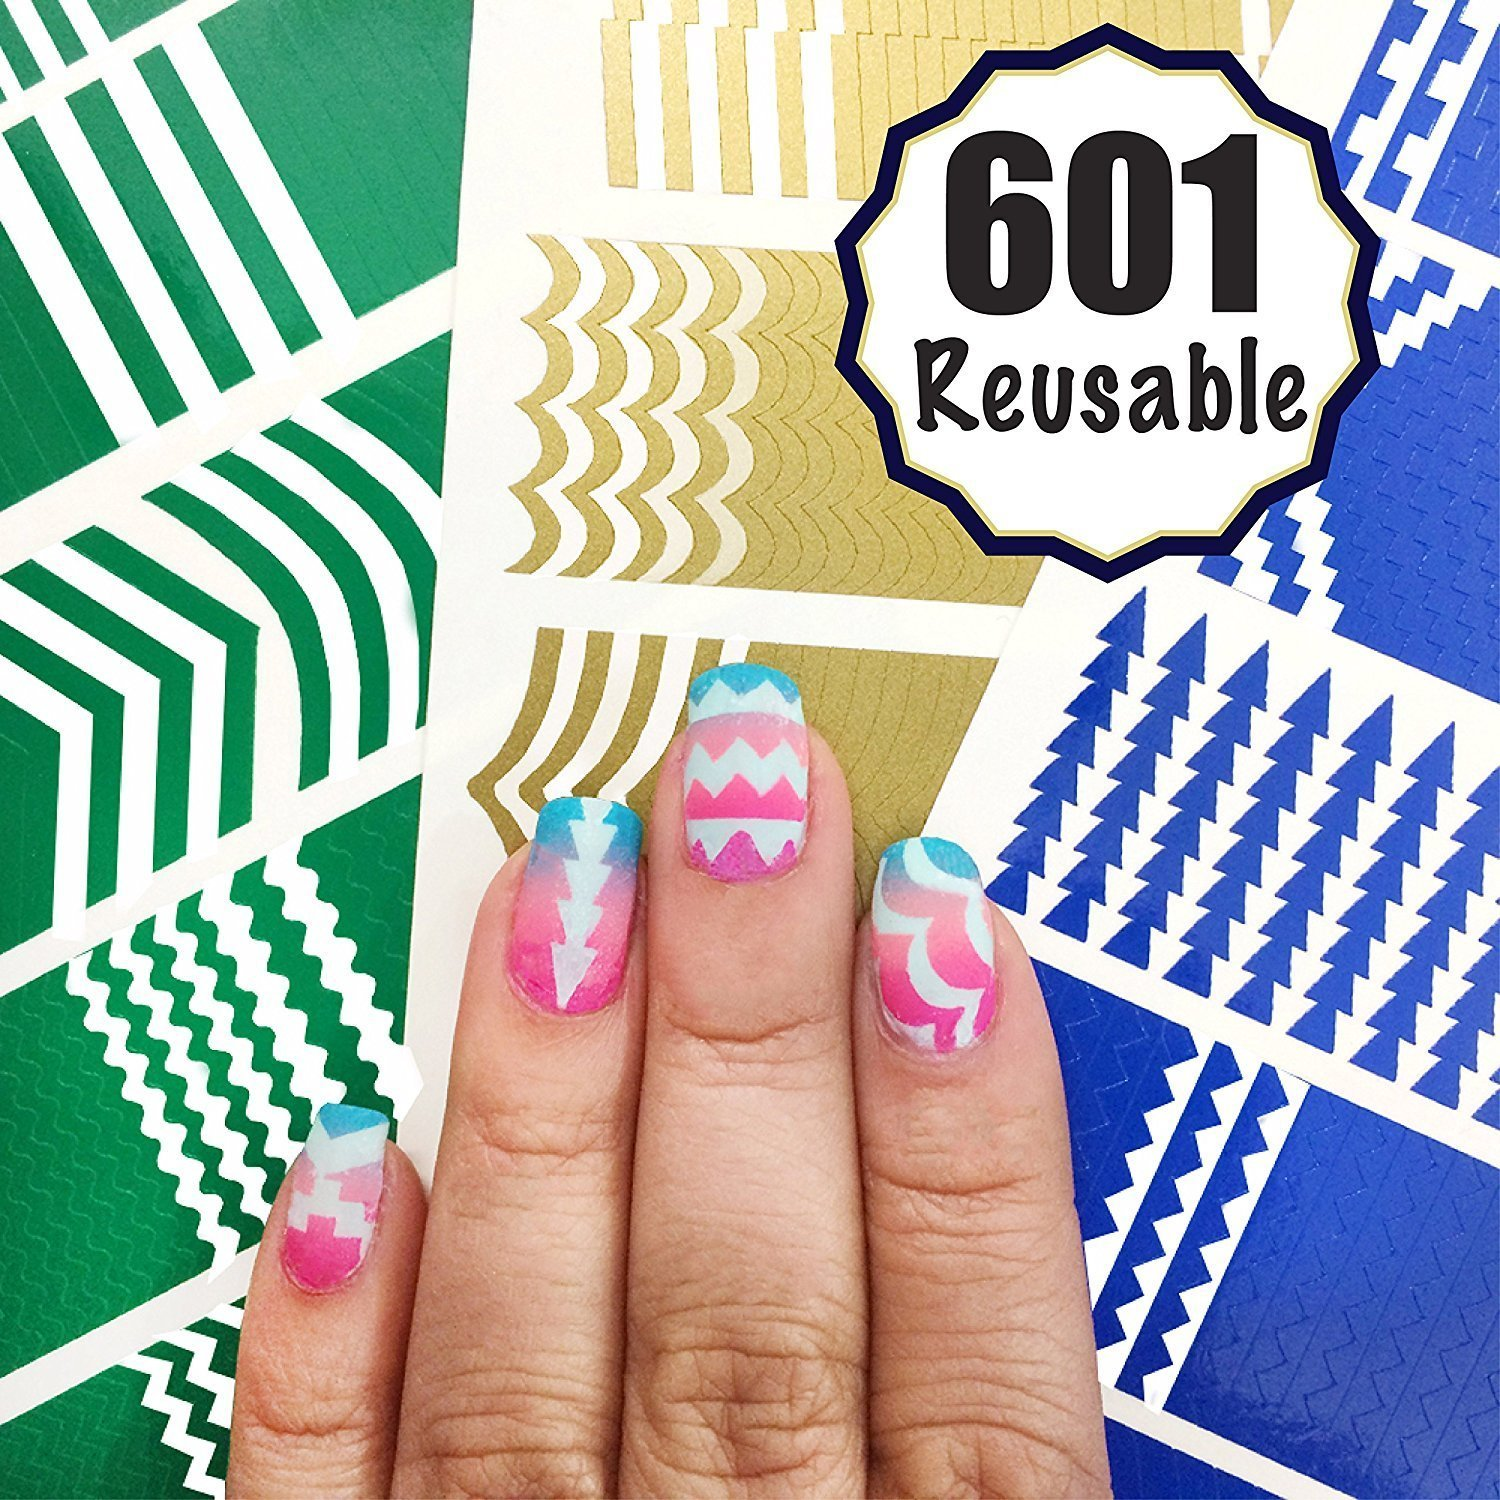 601 Reusable Nail Art Stencils Vinyl - 16 Different Shapes: Chevrons,Tribal,French Tip & More Adhesives Stripe Guides Patterns Designs 3 Sheets Supplies Kit Sticker Tape Decal Craft Gift Teen Girl